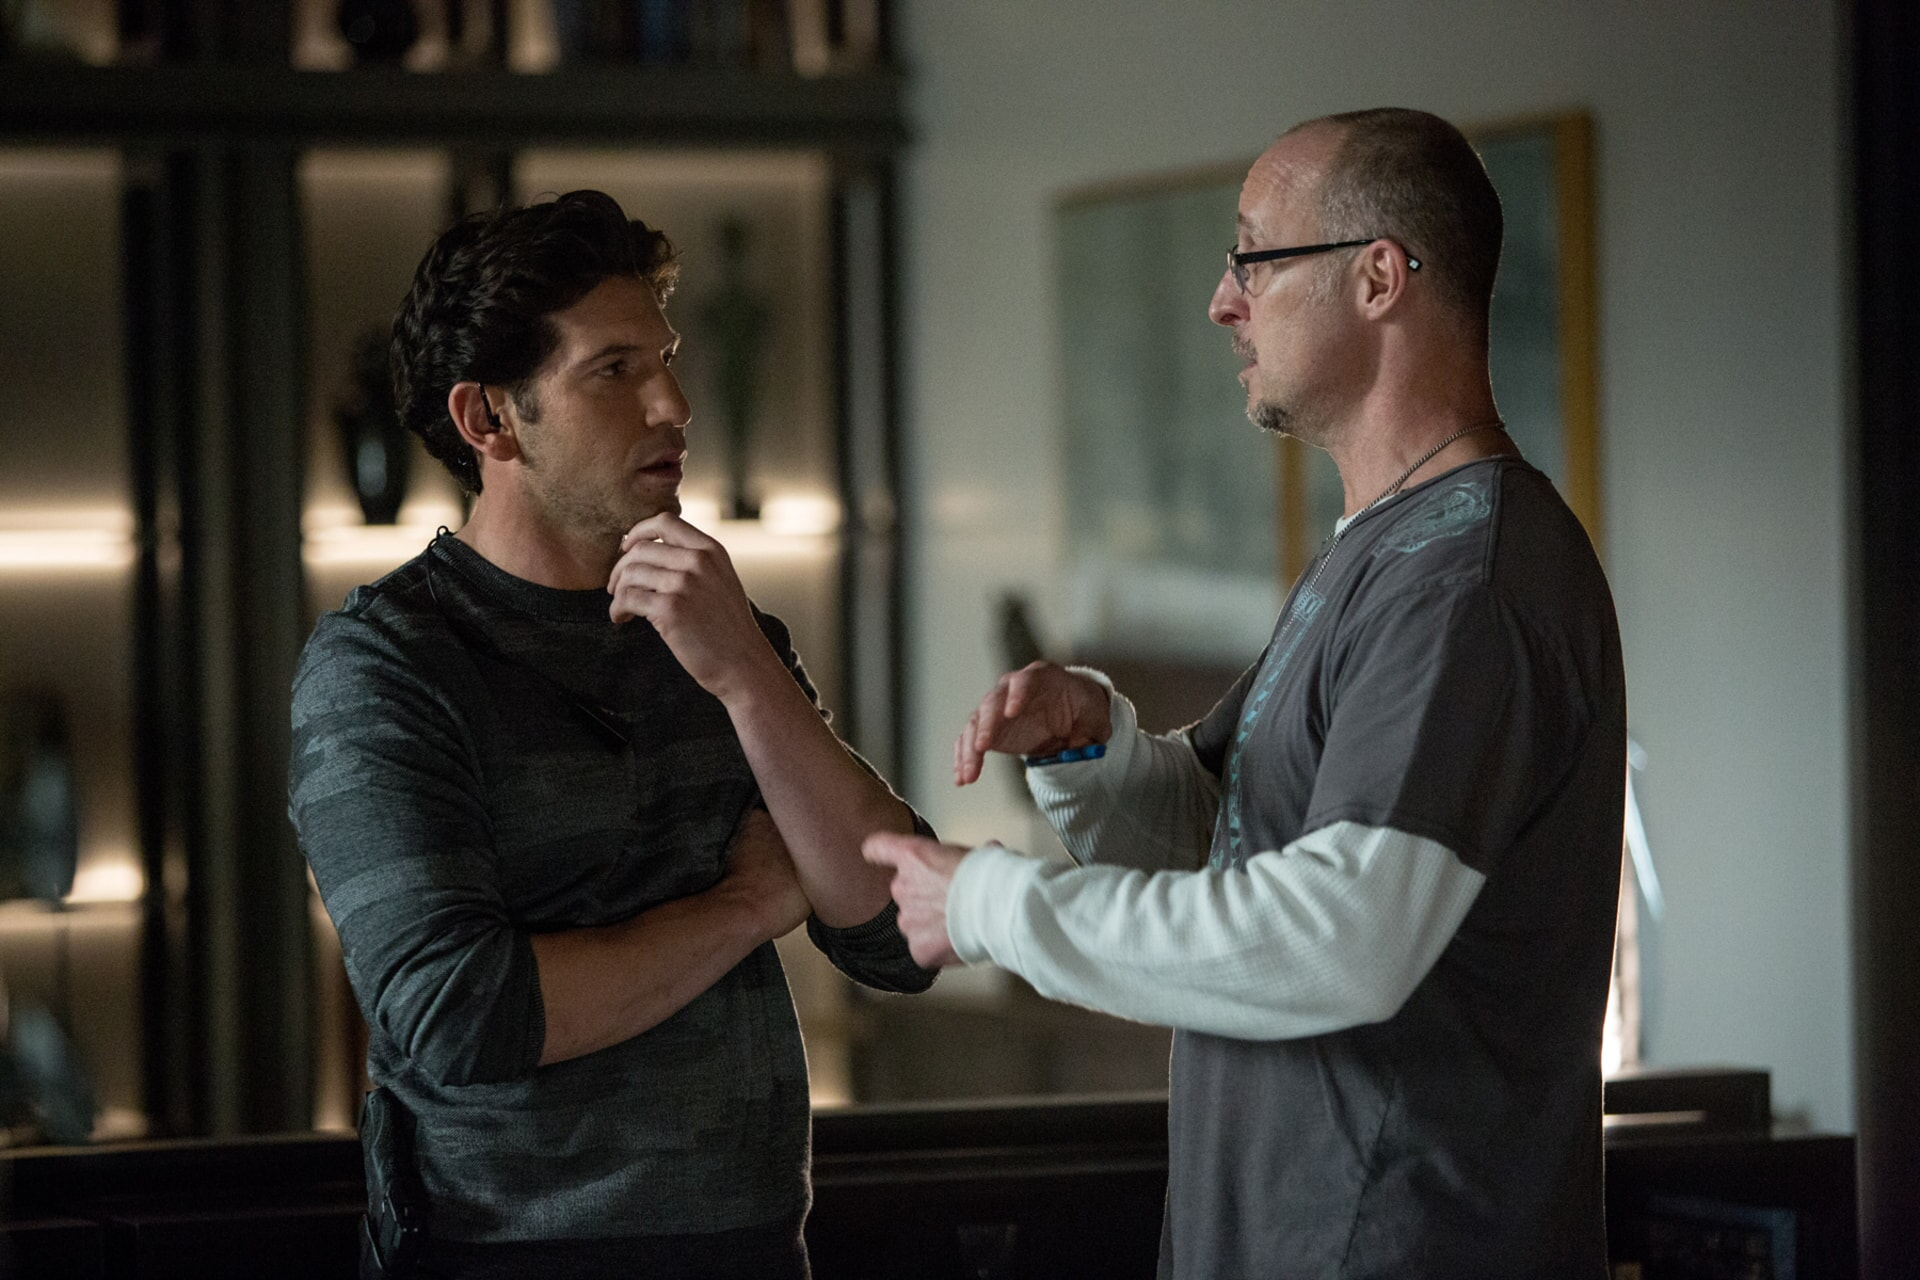 """JON BERNTHAL and director GAVIN O'CONNOR on the set of Warner Bros. Pictures' """"THE ACCOUNTANT,"""" a Warner Bros. Pictures release."""